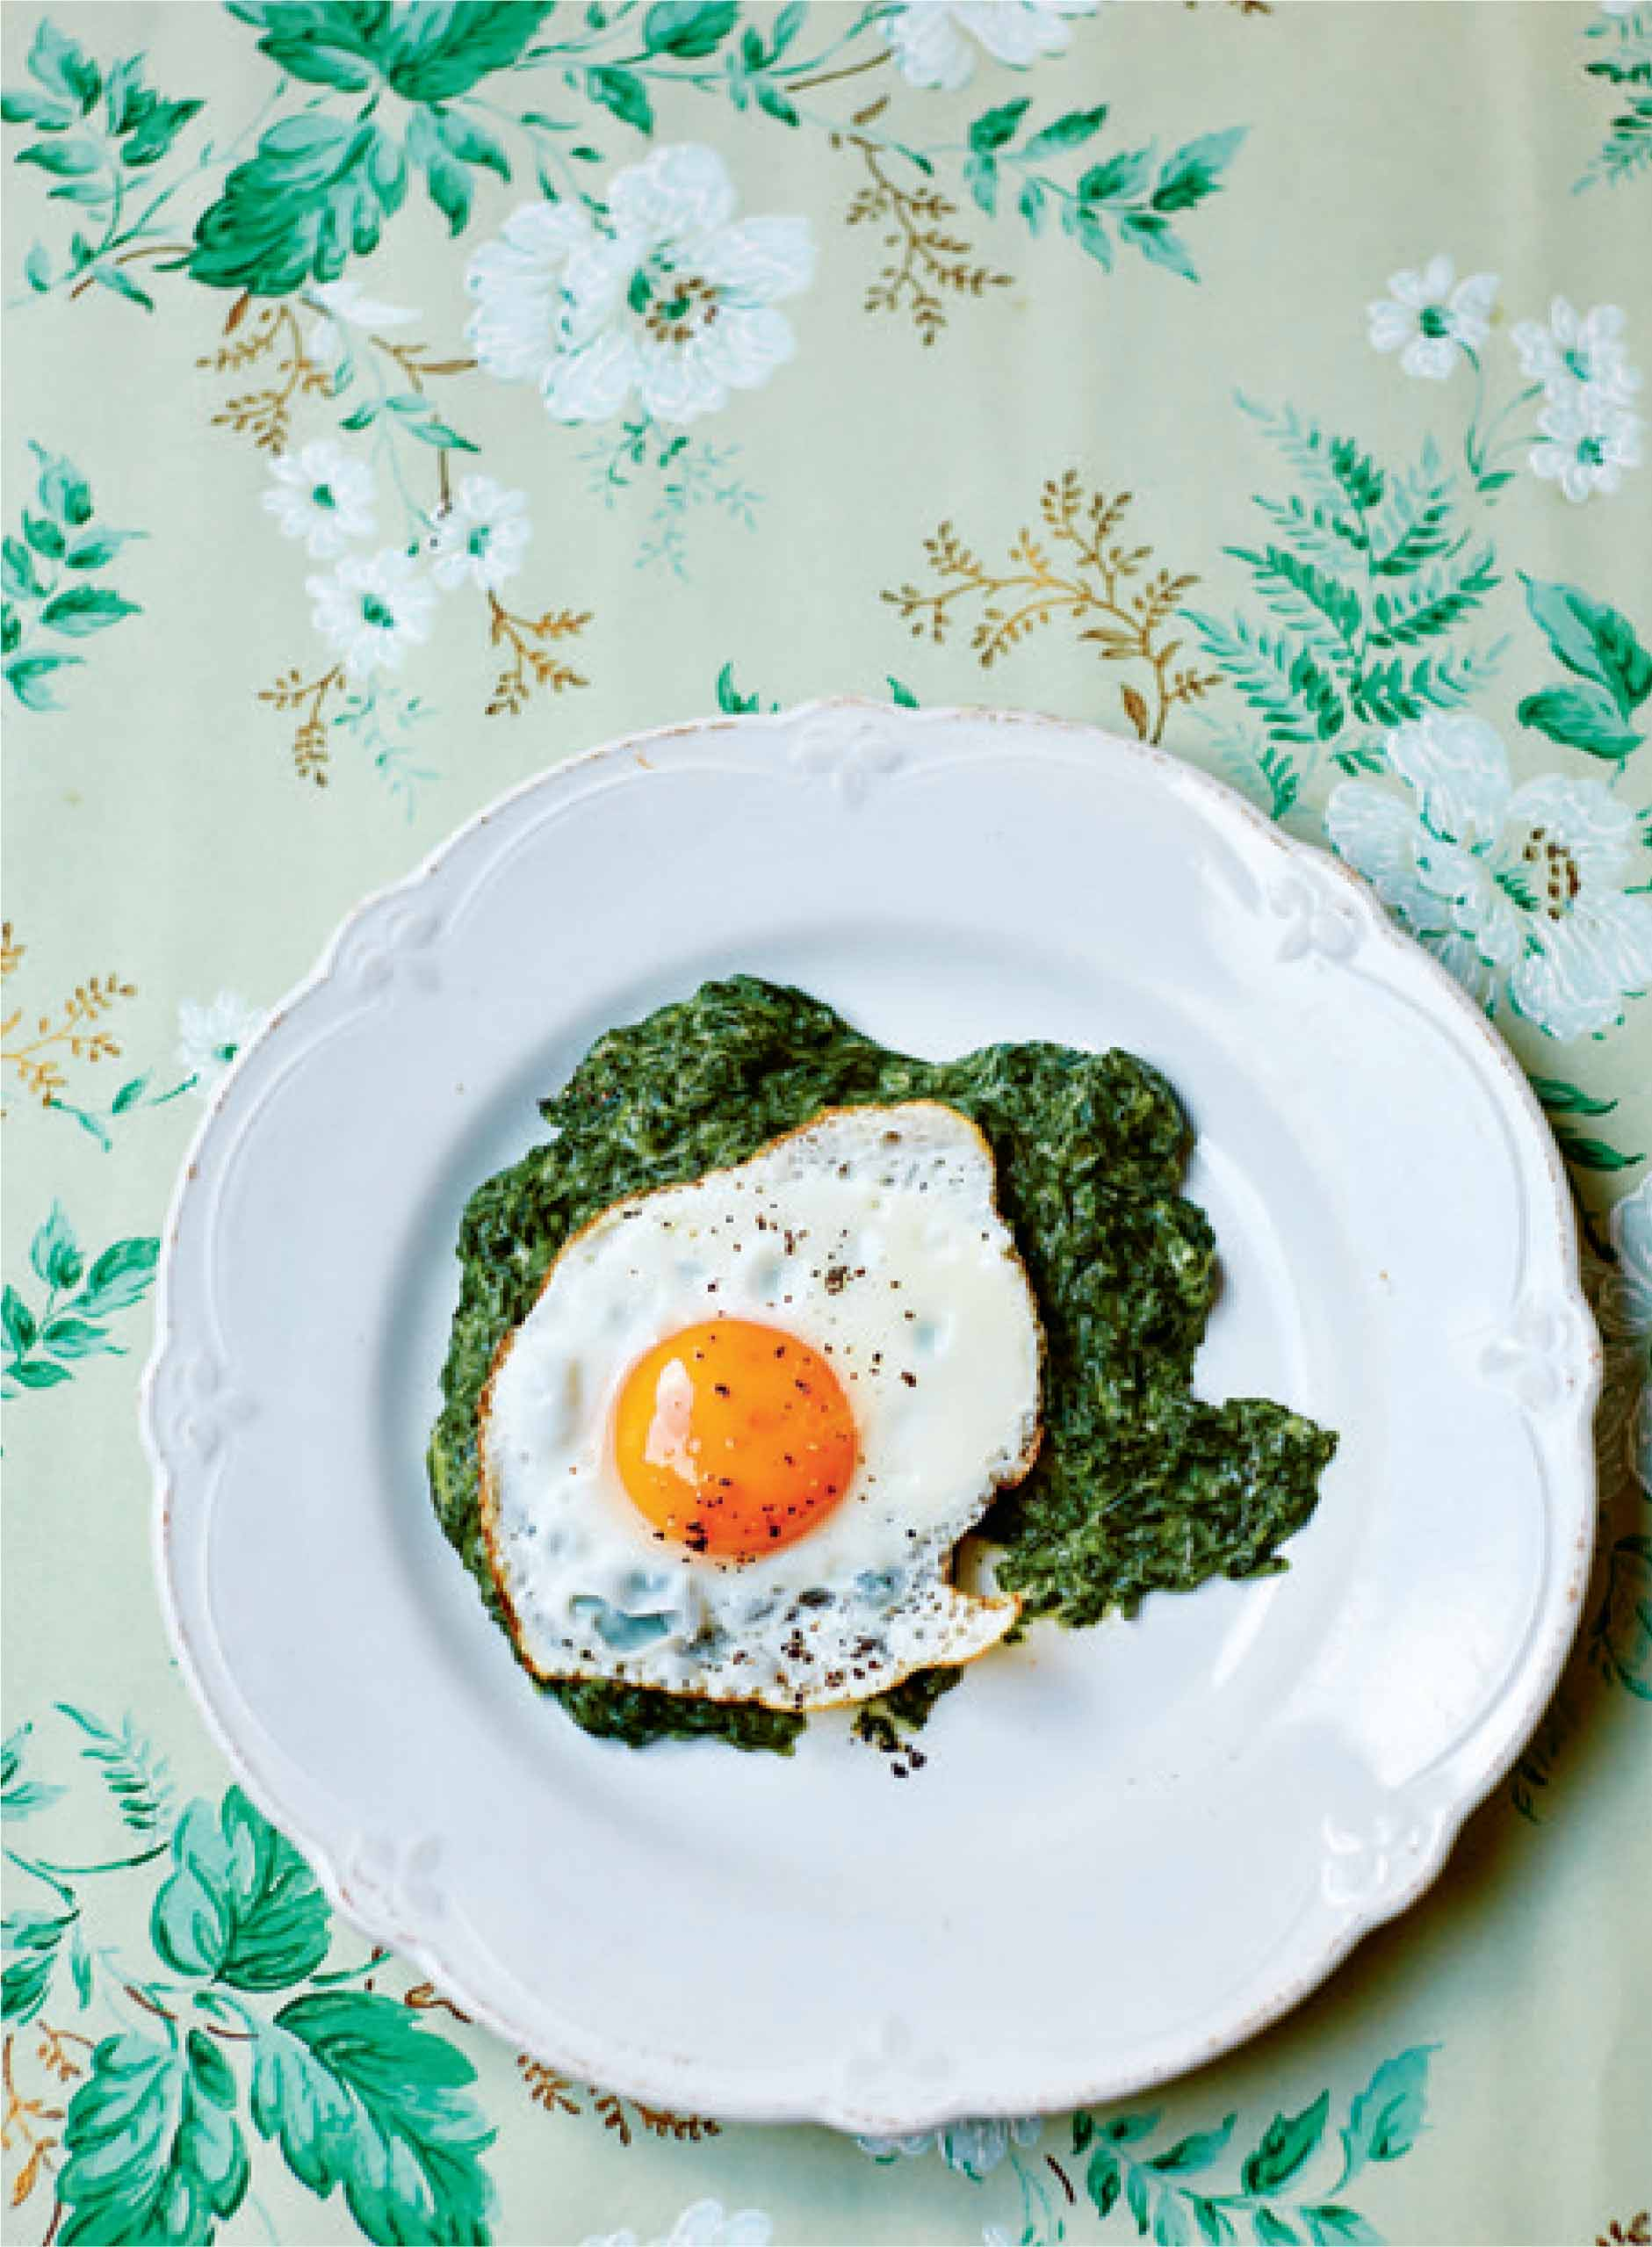 Creamy spinach puree with fried egg